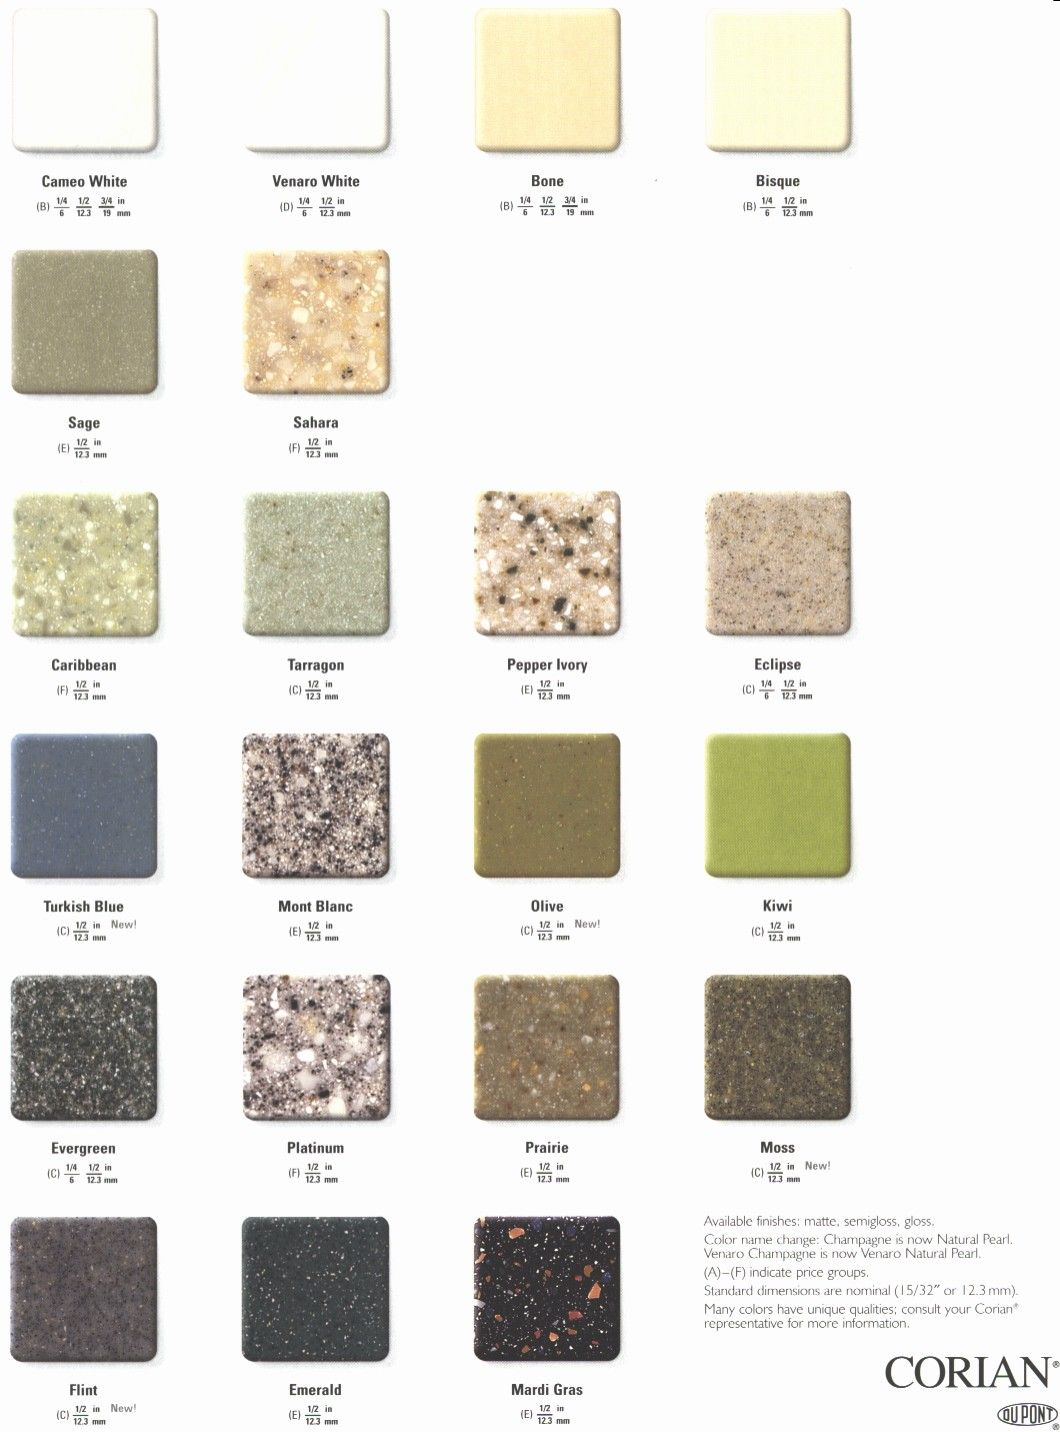 Colors Of Corian Countertops Corian Colors Colors Of Corian Dupont See Why Corian